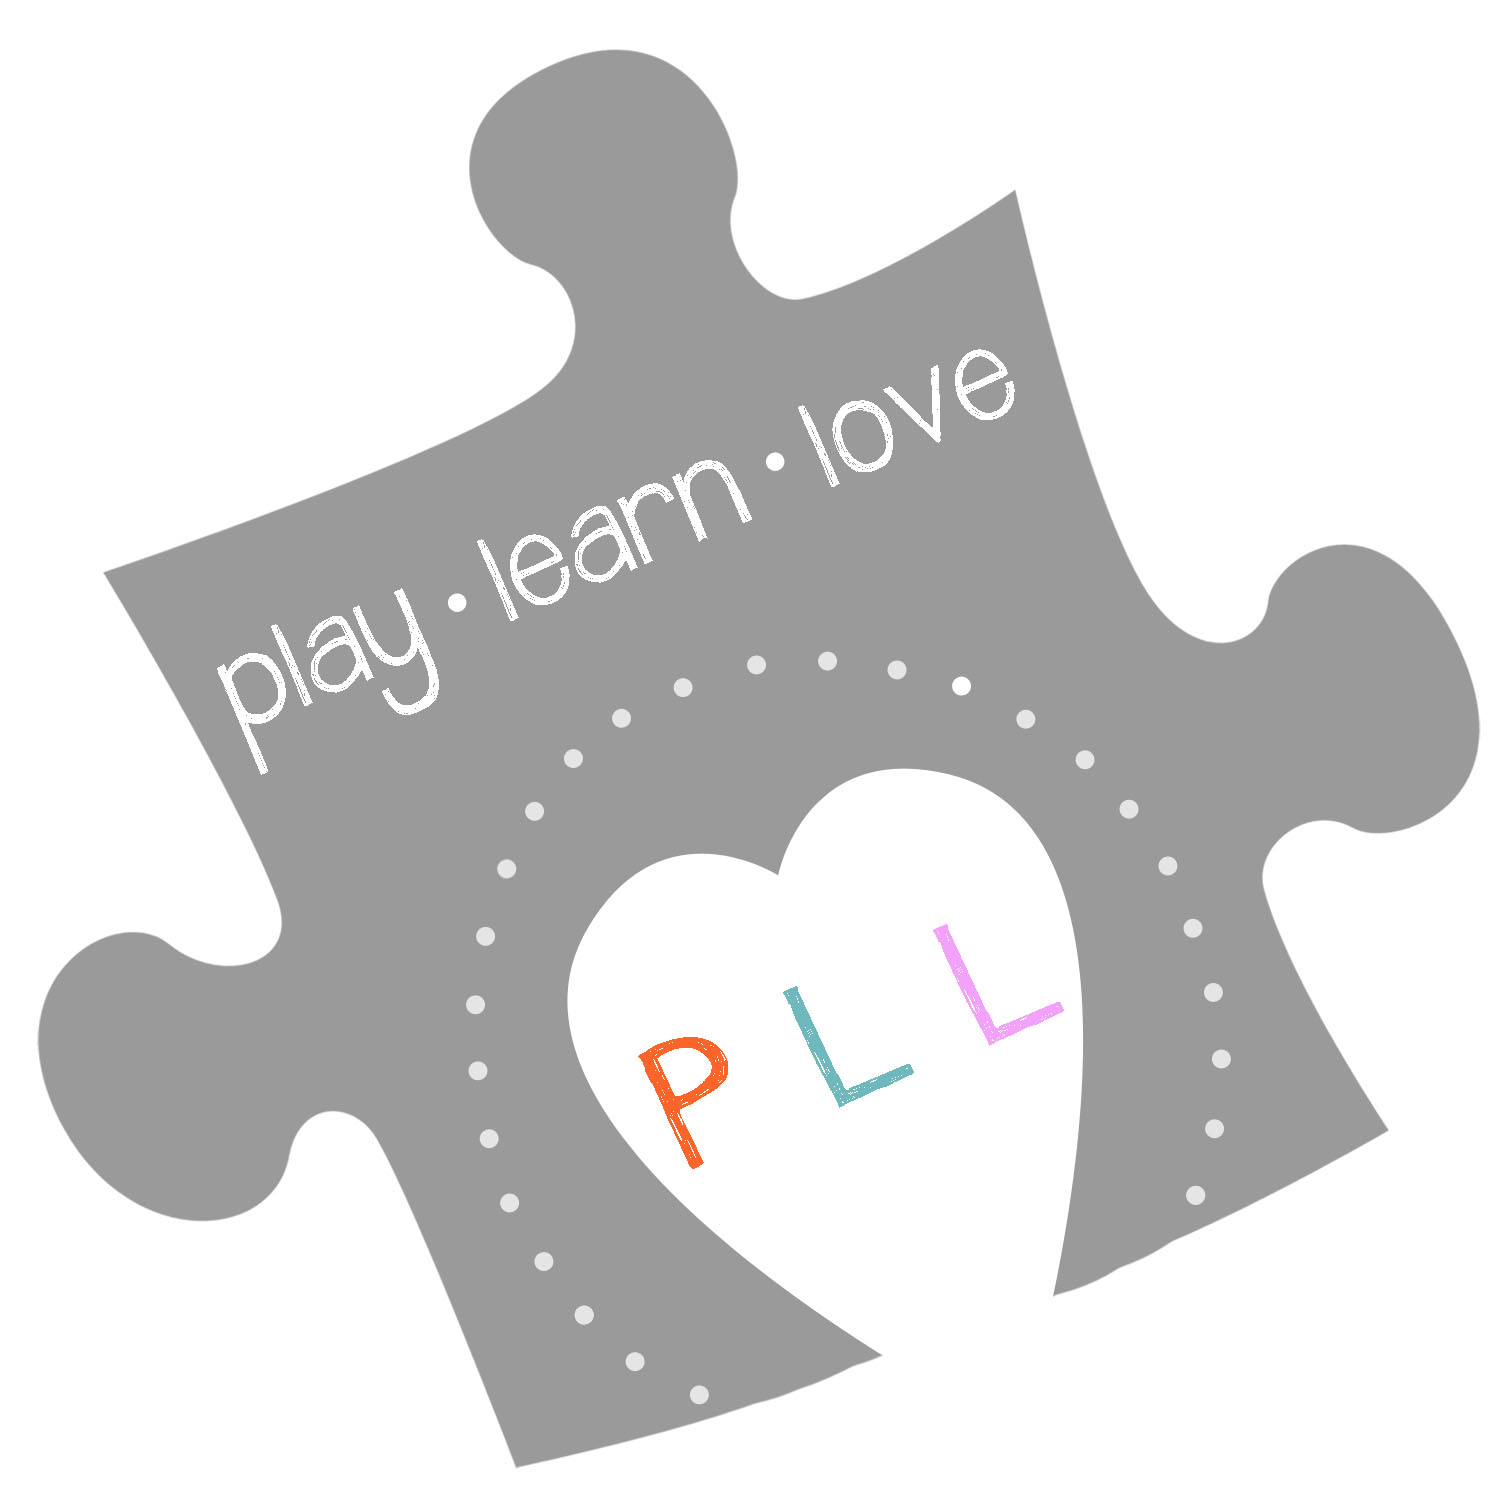 playlearnlove.com